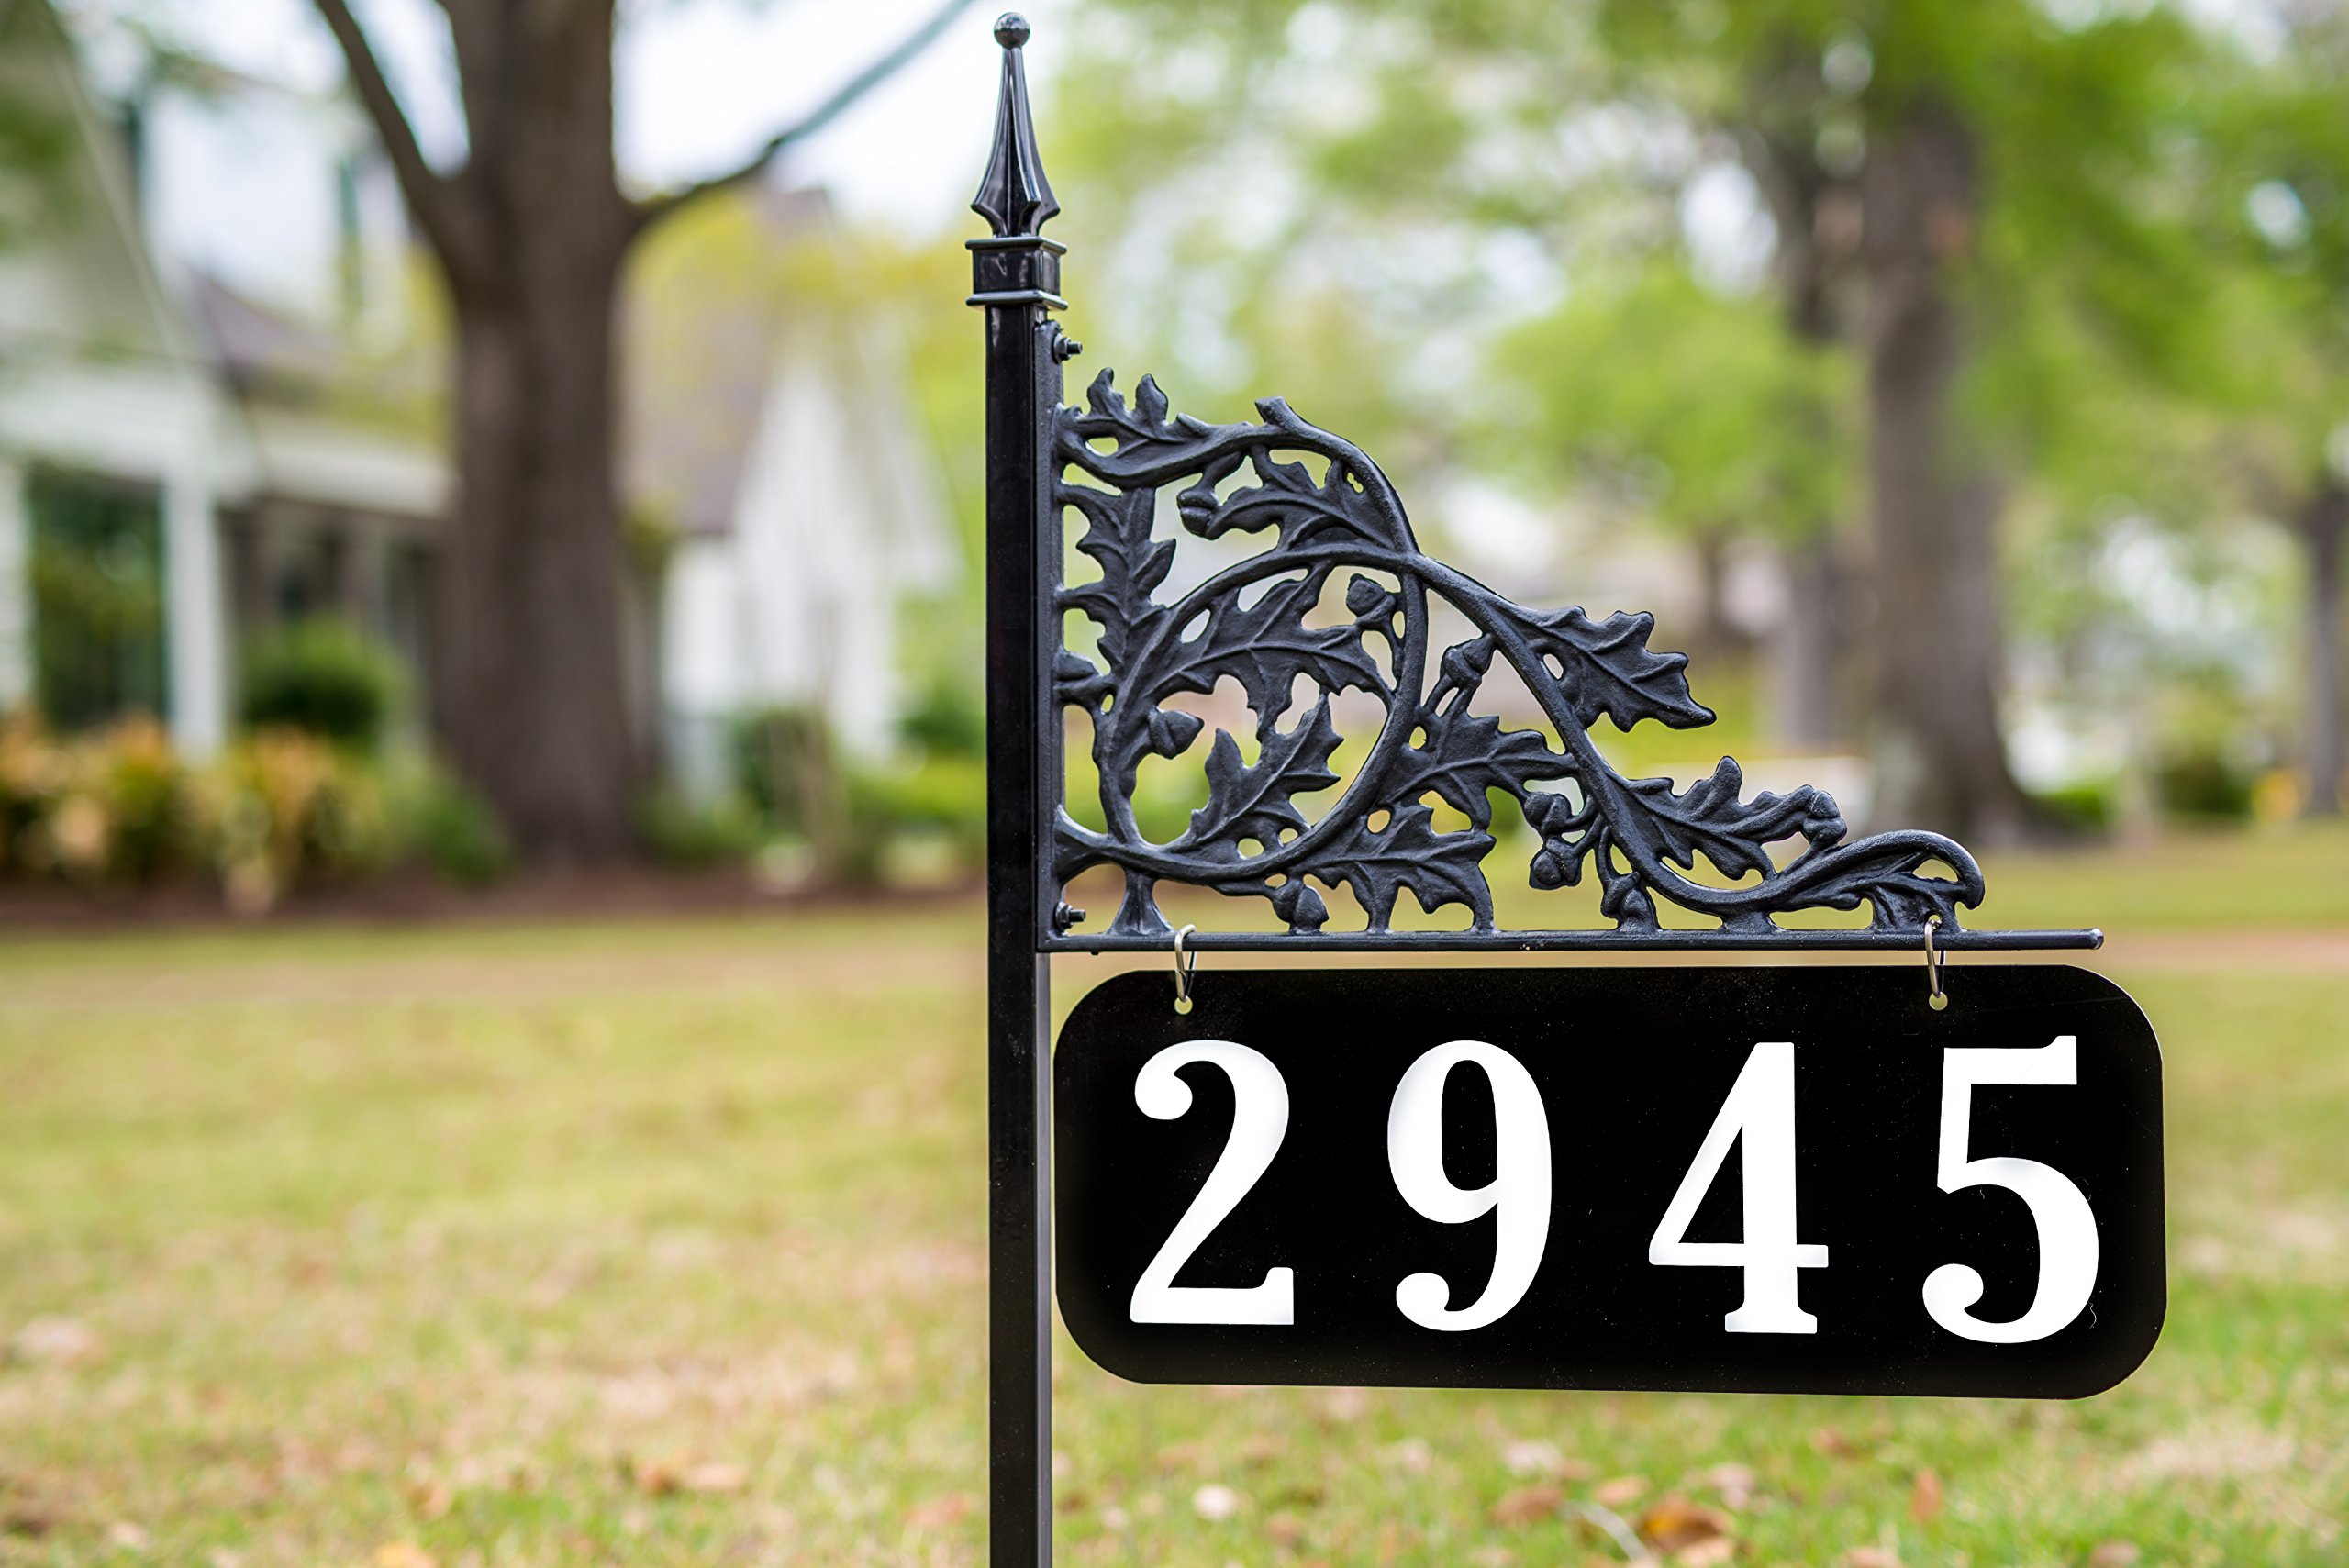 Oak 30 Inch Reflective Address Sign - Double Sided - Easy to Read Day and Night 98% Positive Reviews on Amazon by Address America